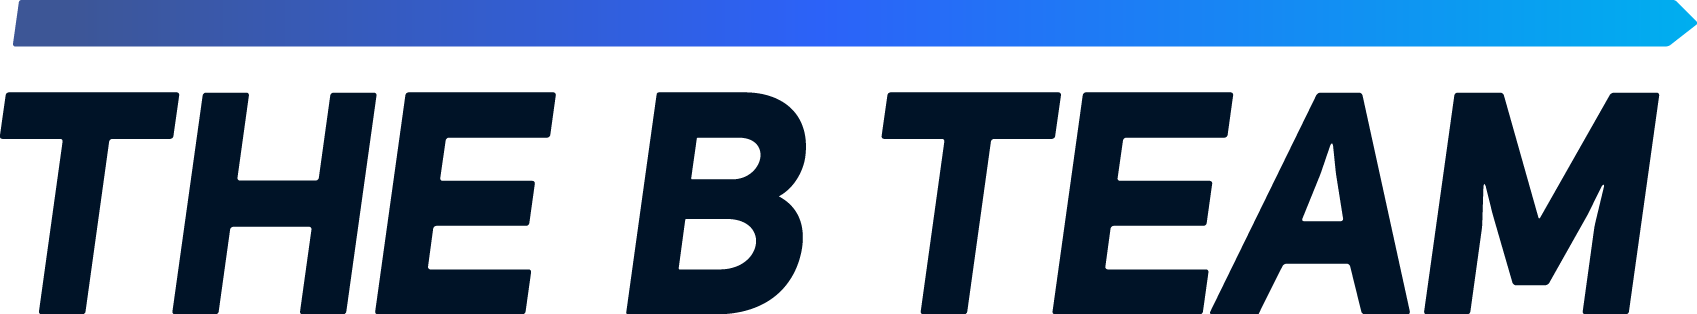 THEBTEAM_LOGO_COLOR_RGB-18523